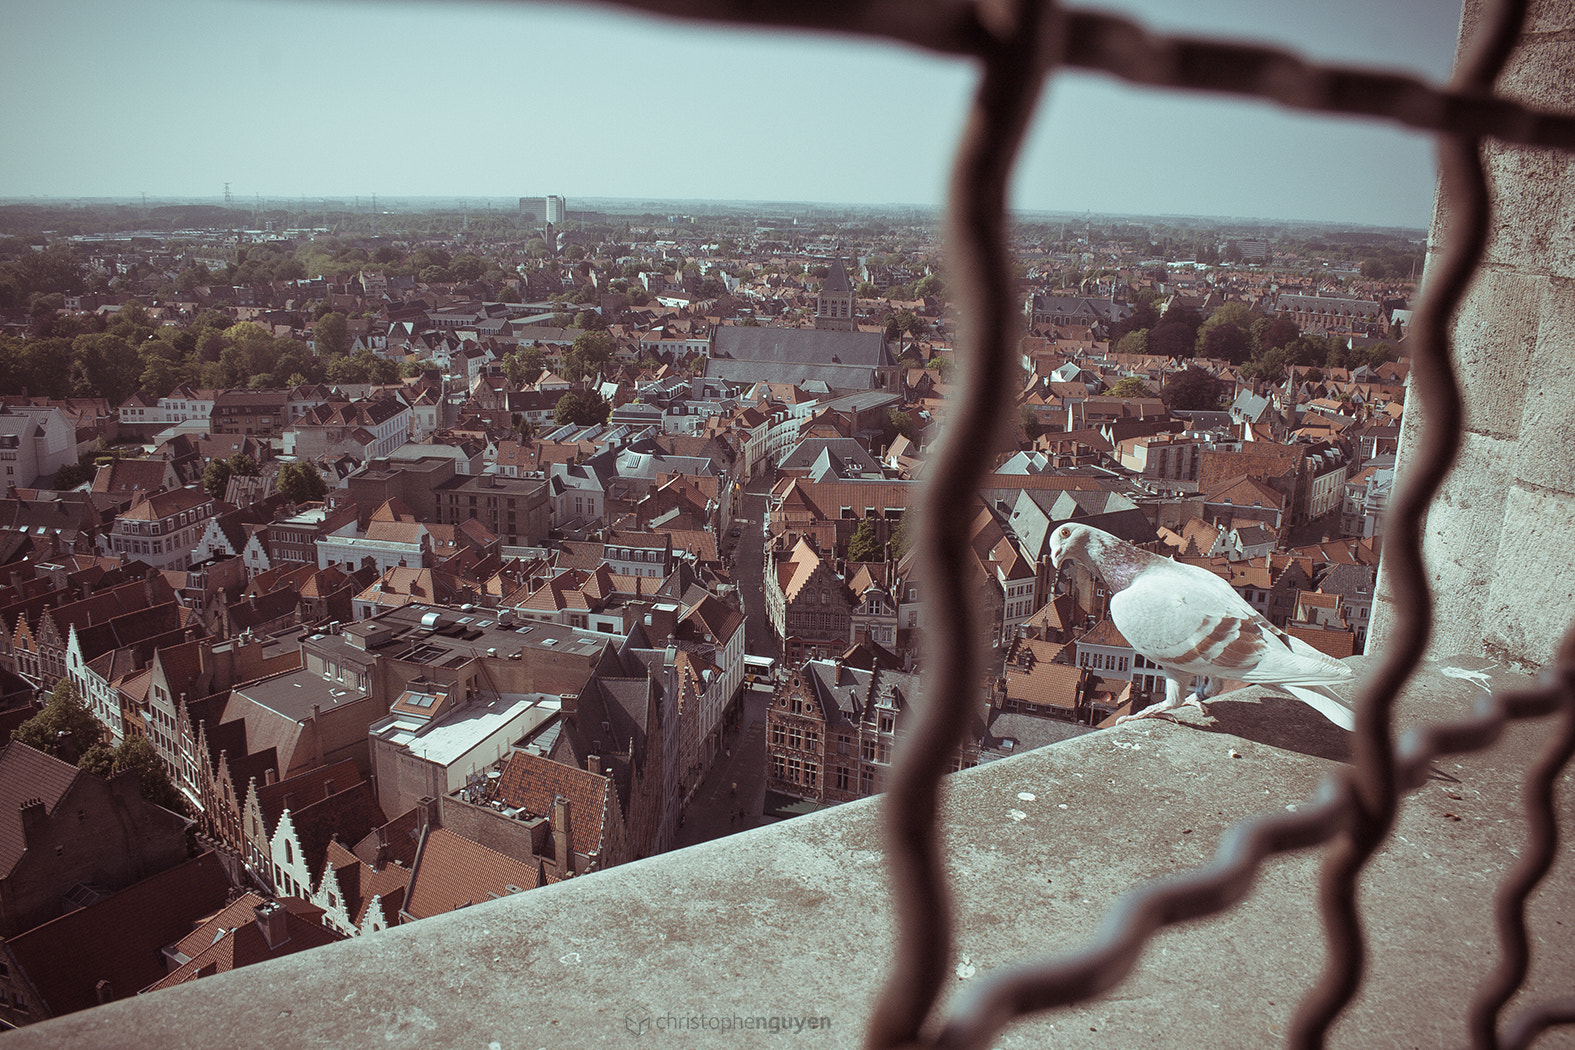 Photograph In Bruges by Christophe Nguyen on 500px